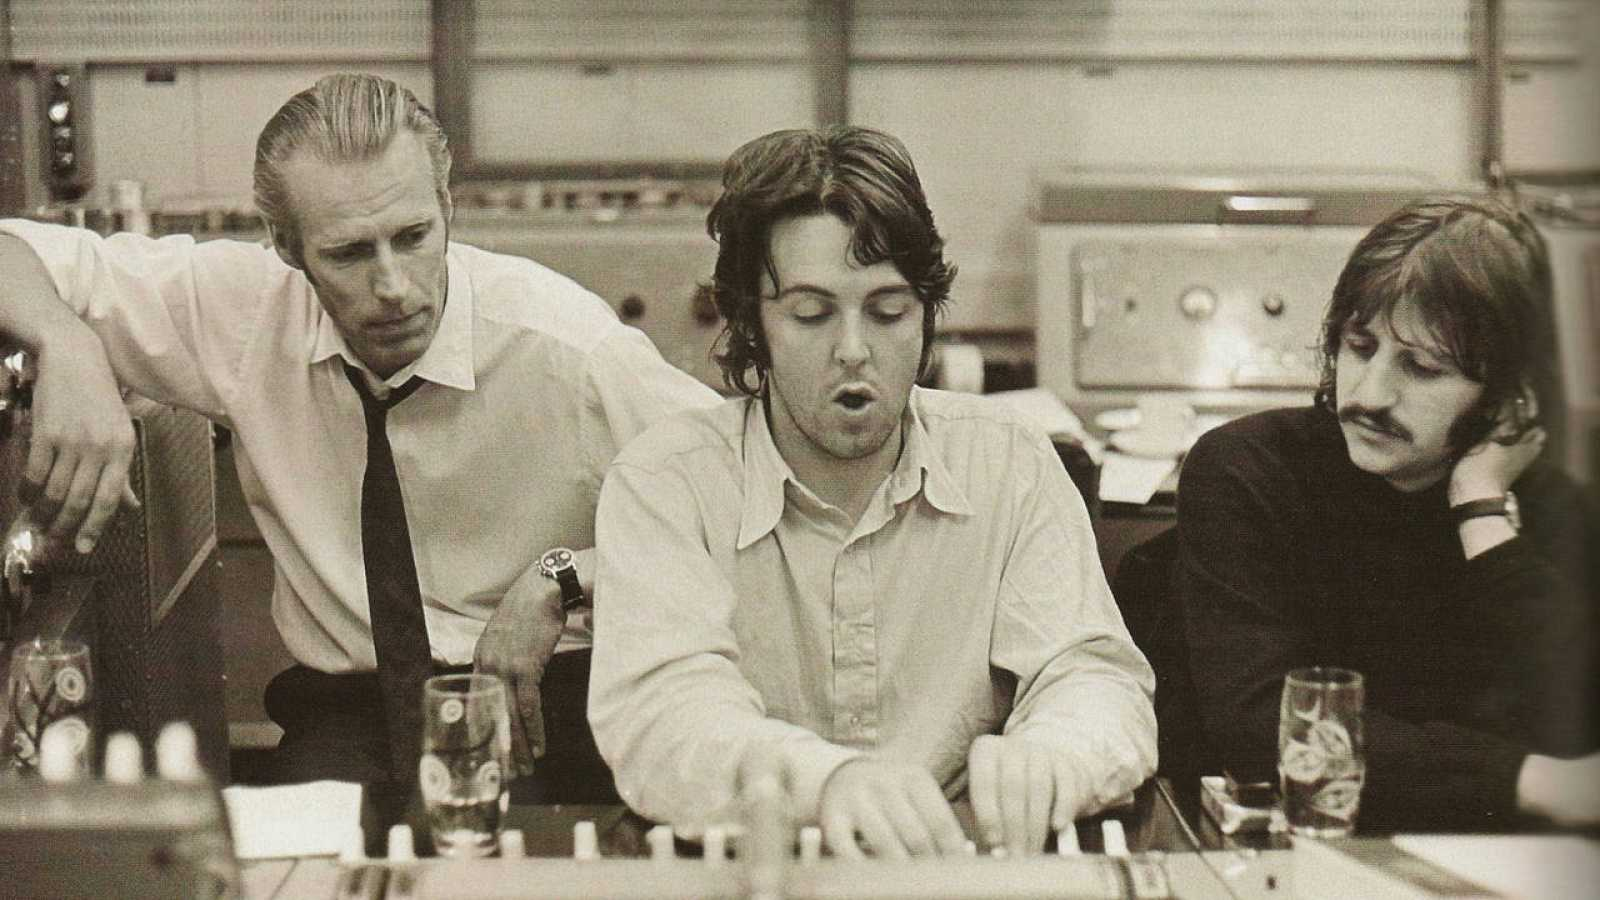 George Martin beatles Paul McCartney Ringo Starr